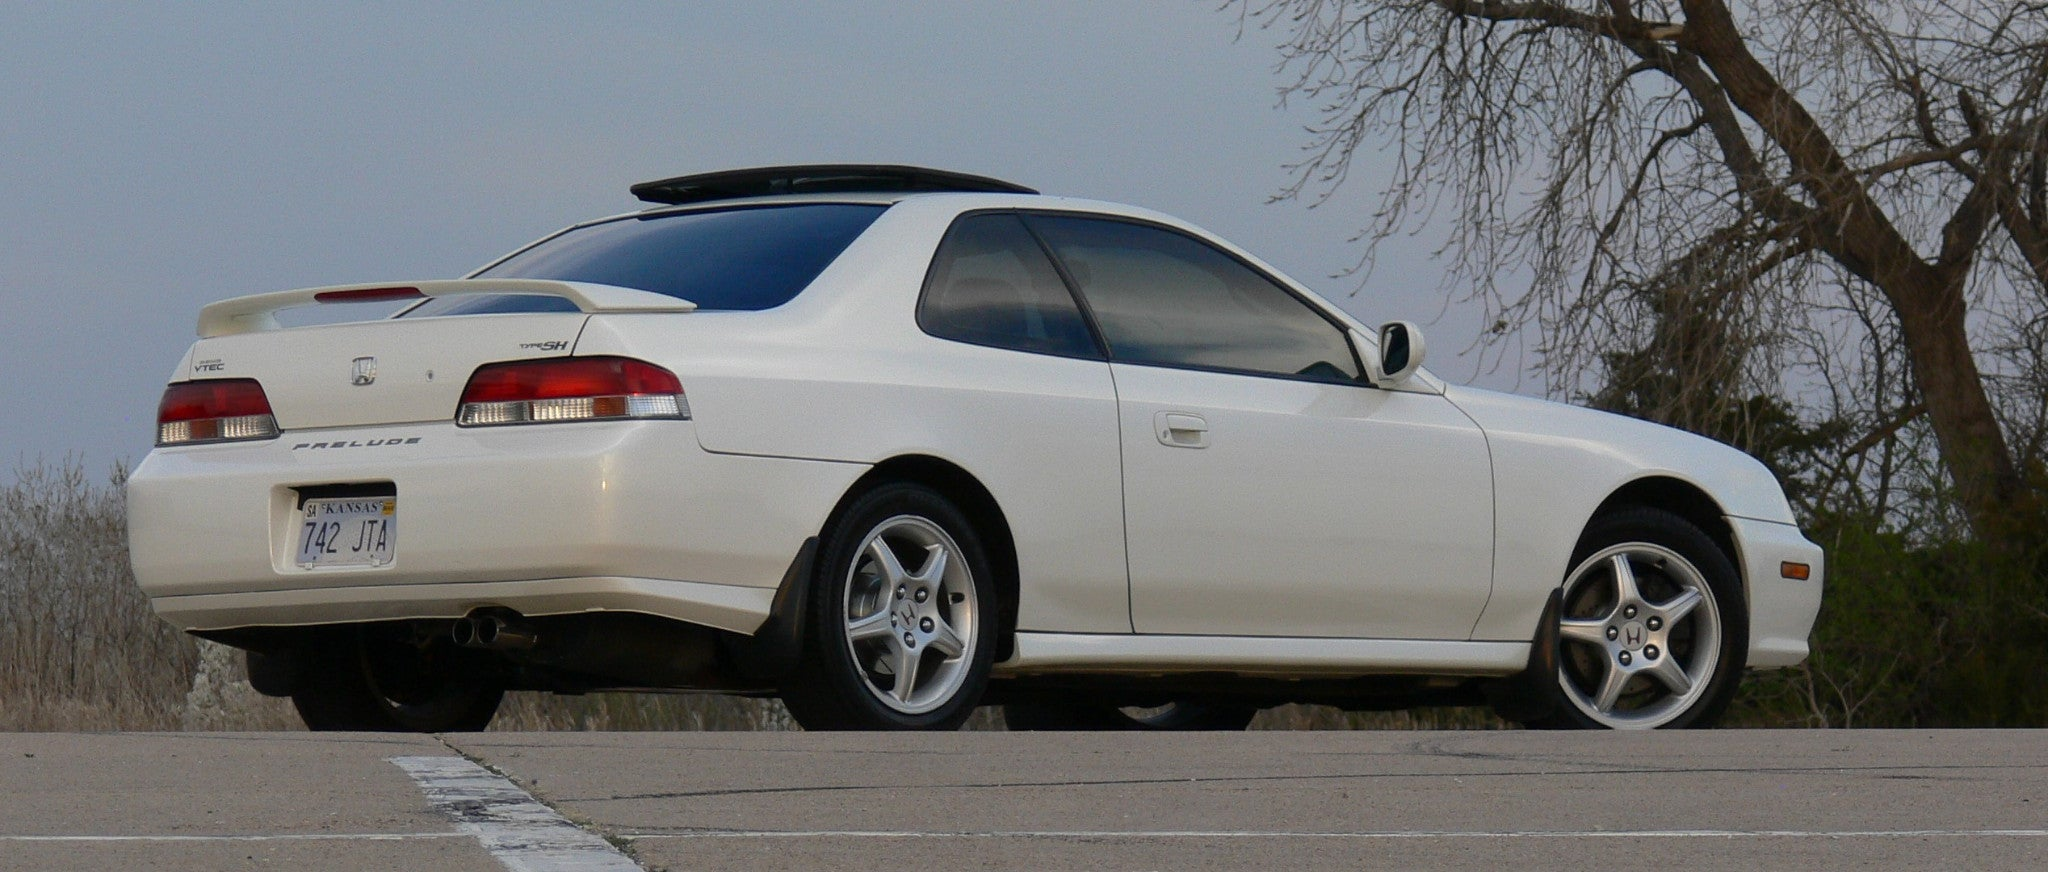 here s what a prime honda prelude is worth today rh jalopnik com 2013 Honda Prelude 1999 Honda Prelude